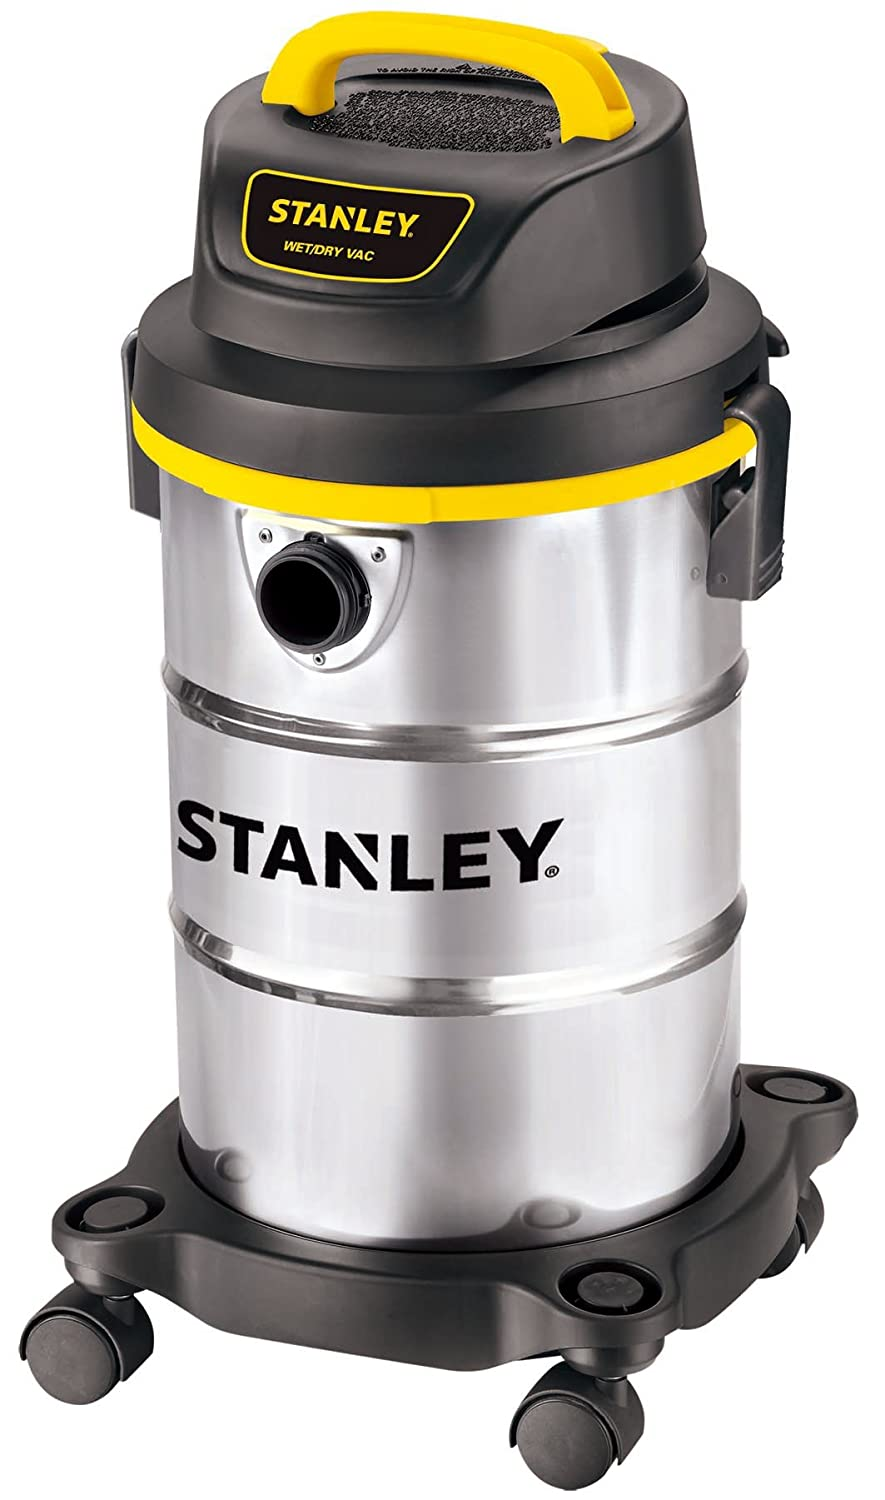 Stanley Wet/Dry Vacuum, 5 Gallon, 4 Horsepower, Stainless Steel Tank